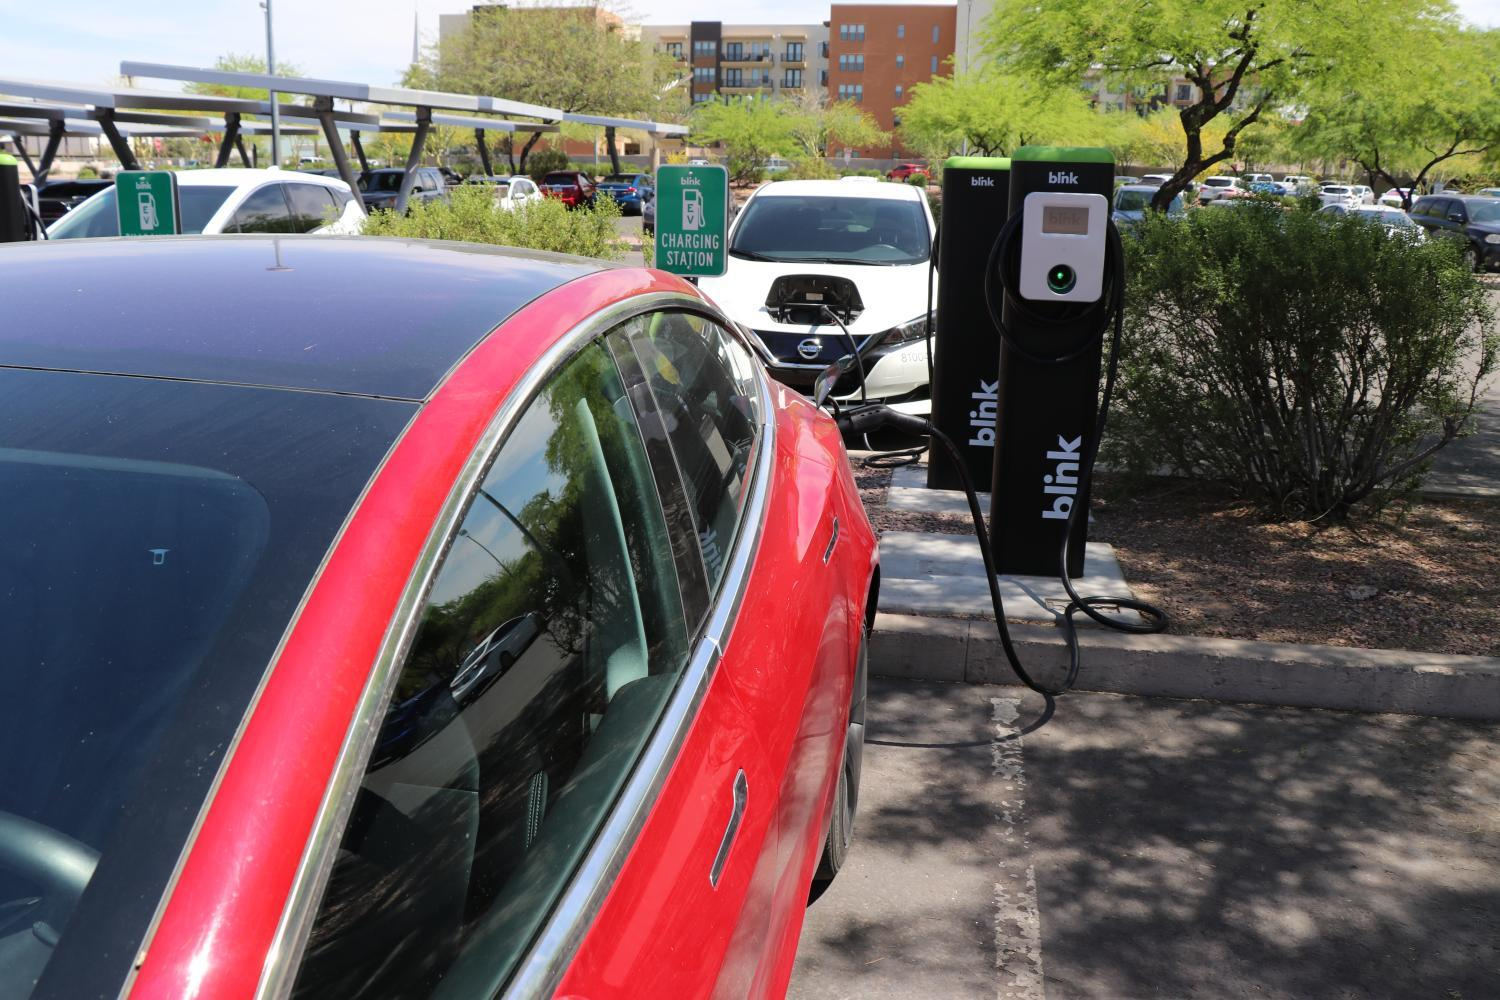 car using electric charging station